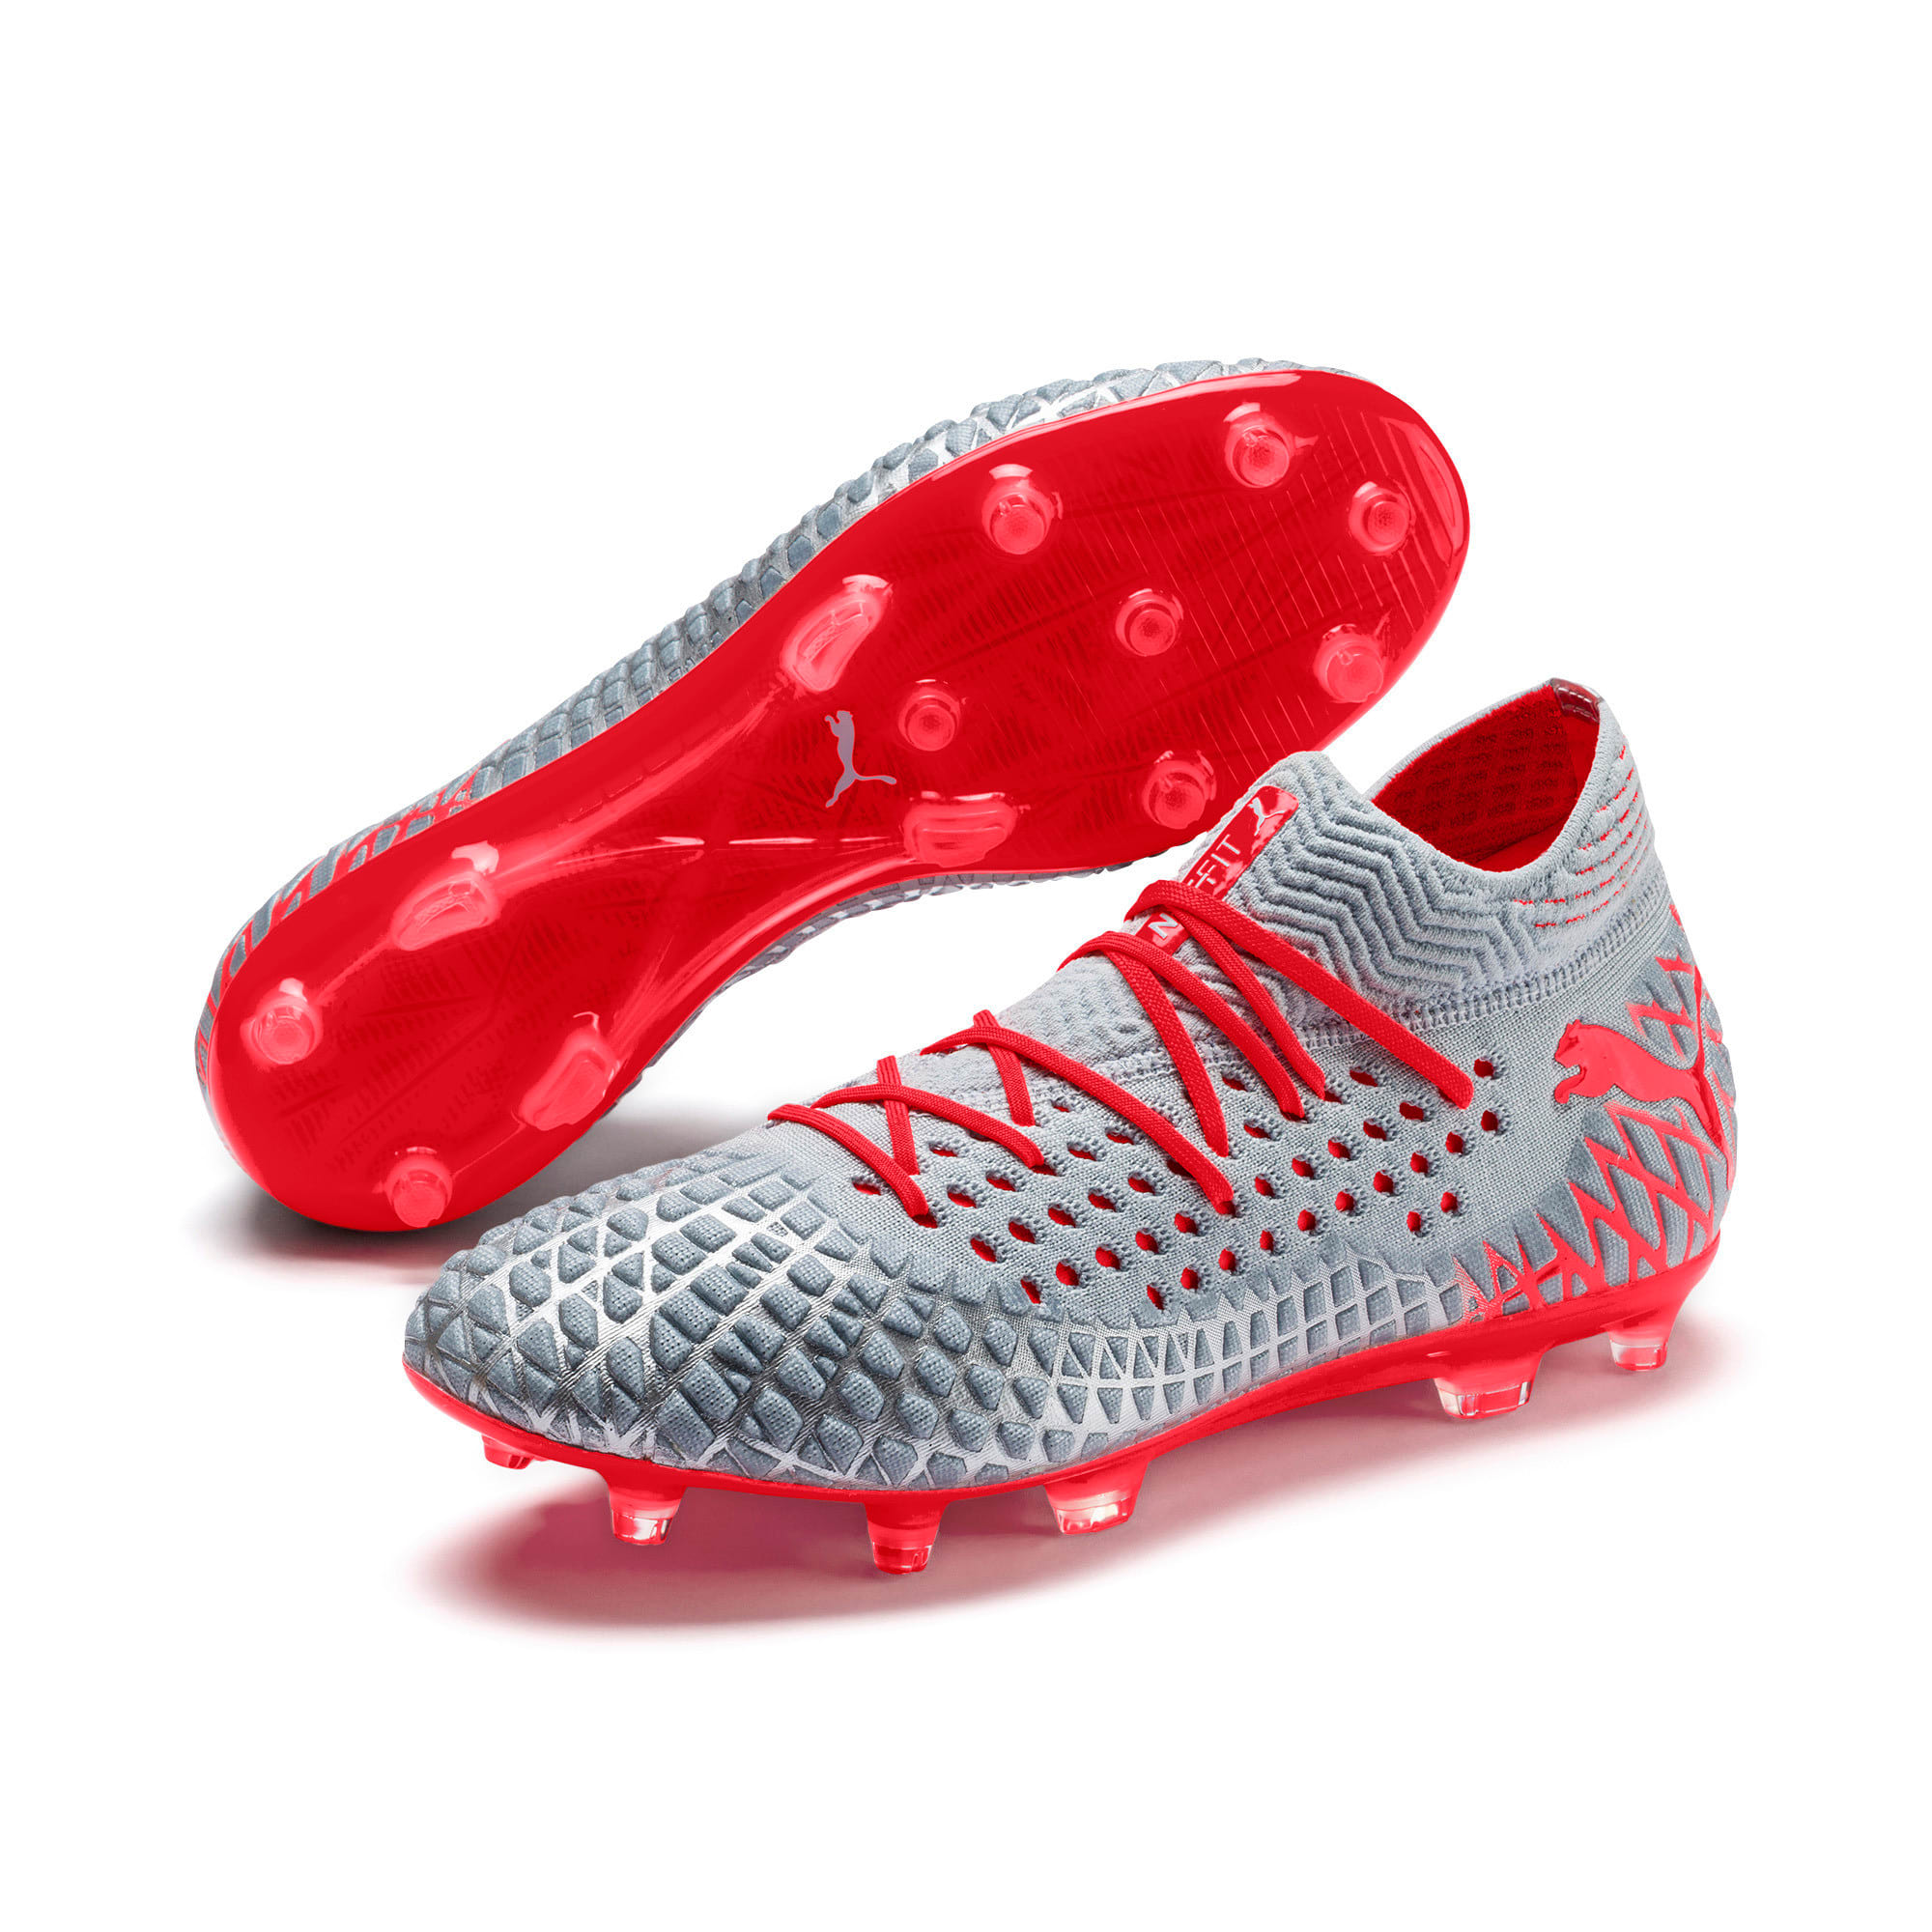 Thumbnail 3 of FUTURE 4.1 NETFIT FG/AG Herren Fußballschuhe, Blue-Nrgy Red-High Risk Red, medium